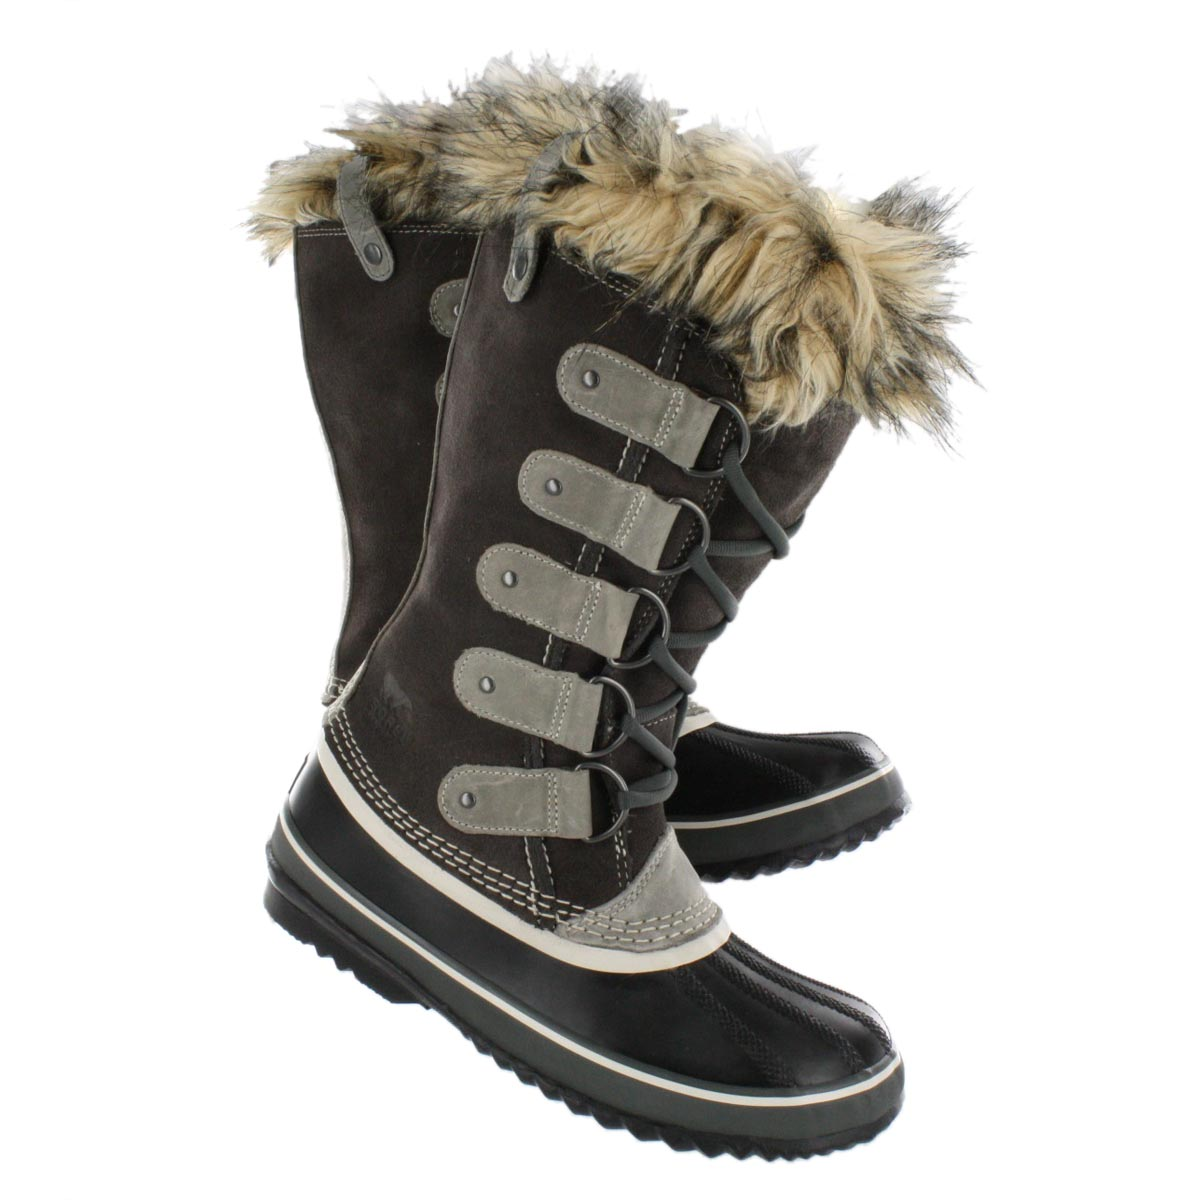 Cute Womens Snow Boots 0cSkj0Xq